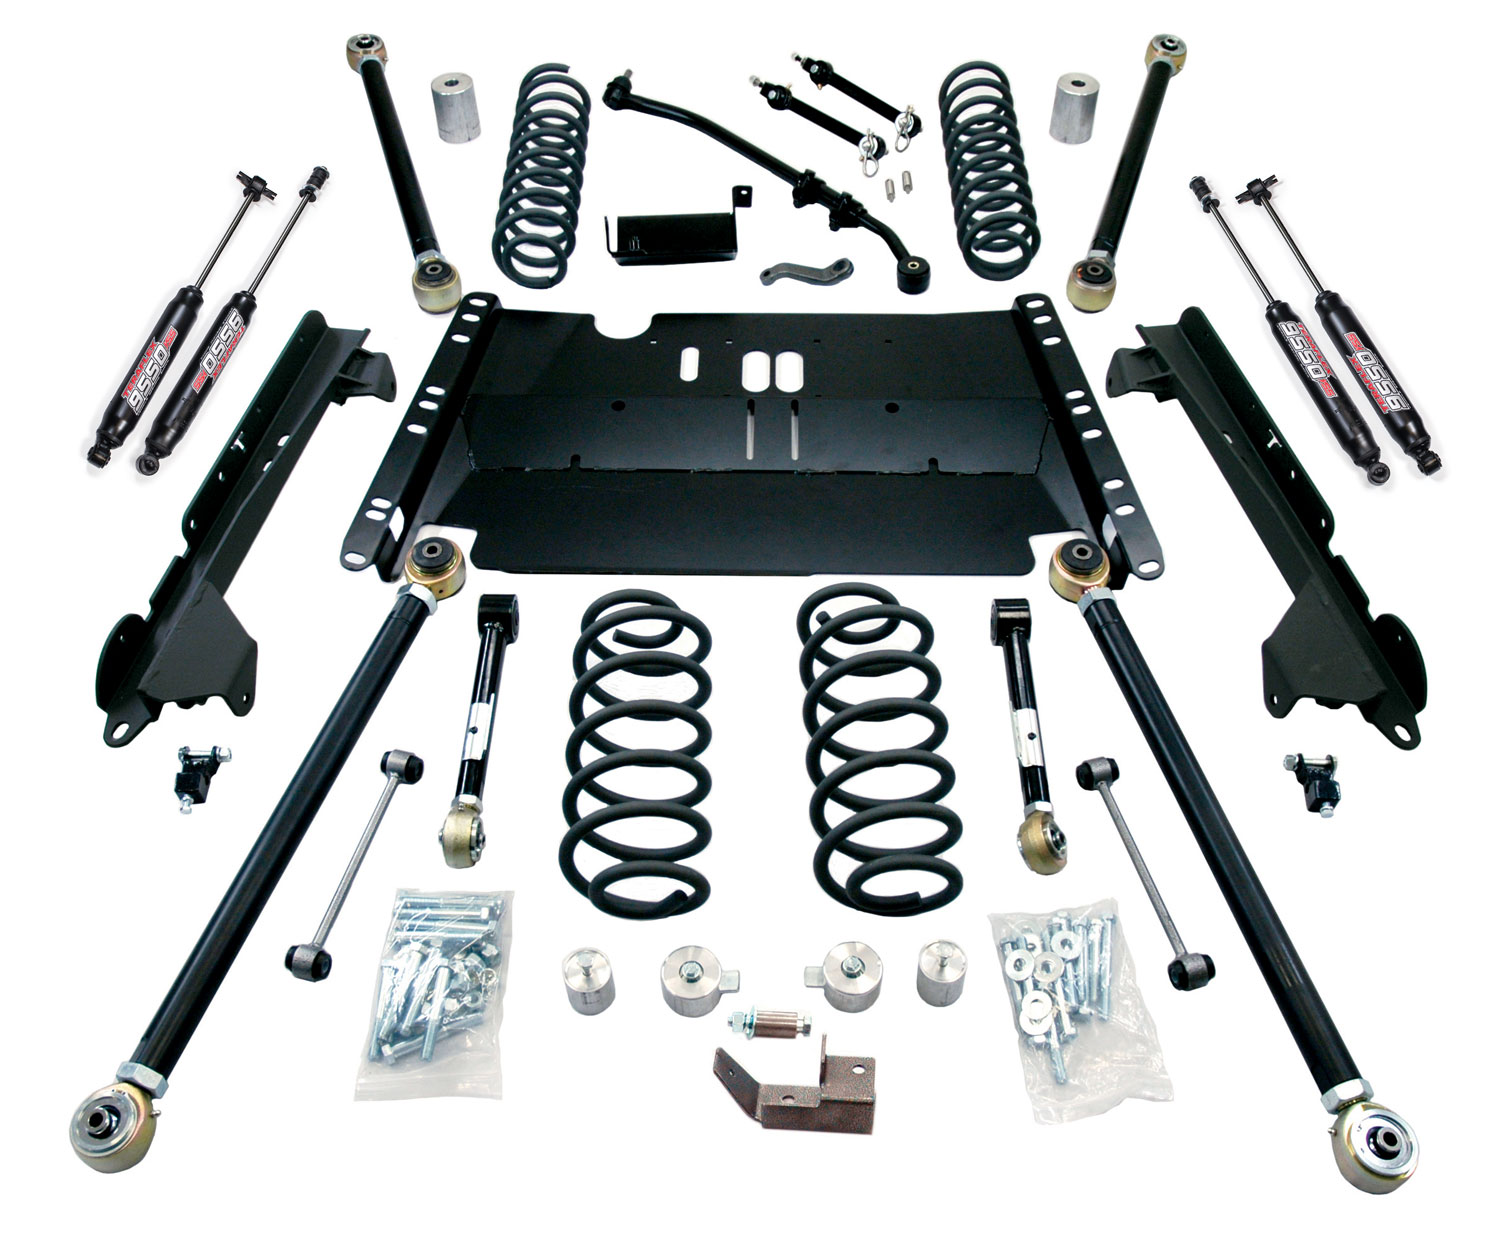 Teraflex 4in Enduro LCG Lift Kit W/9550 Shocks - LJ